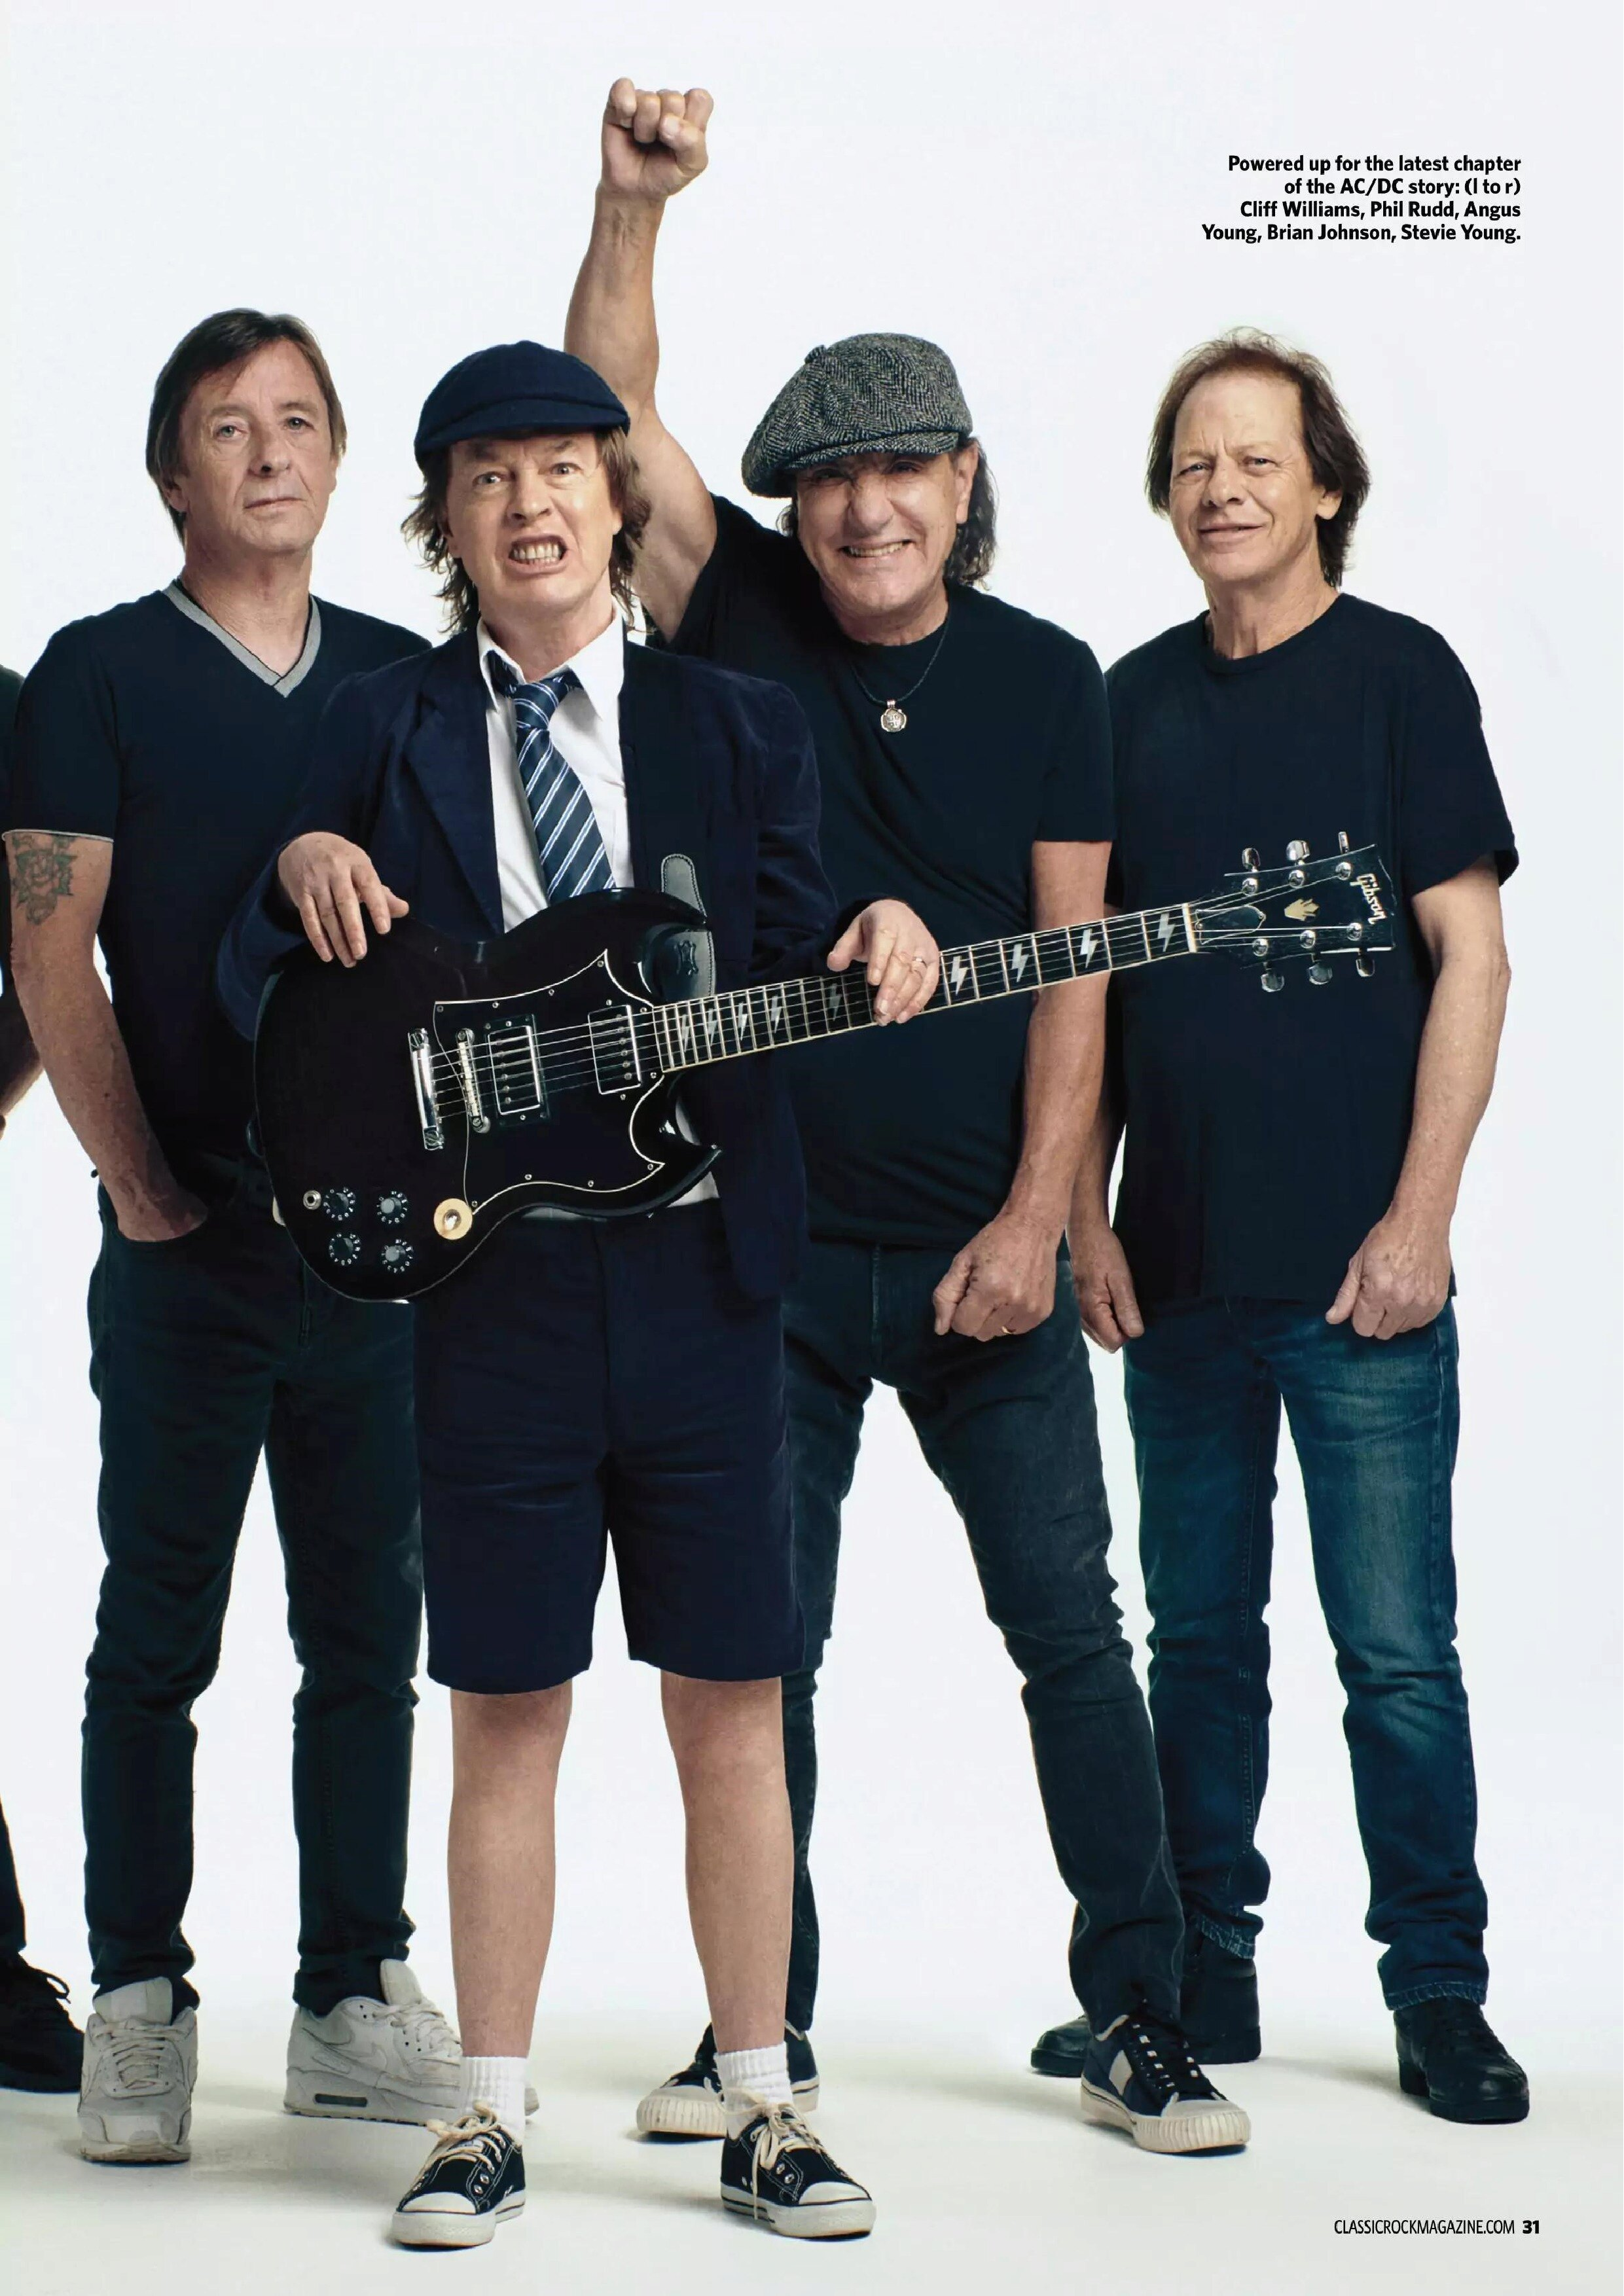 ACDC Power Up (2020) Hard-Rock Australie - Page 3 Cl_ic_14